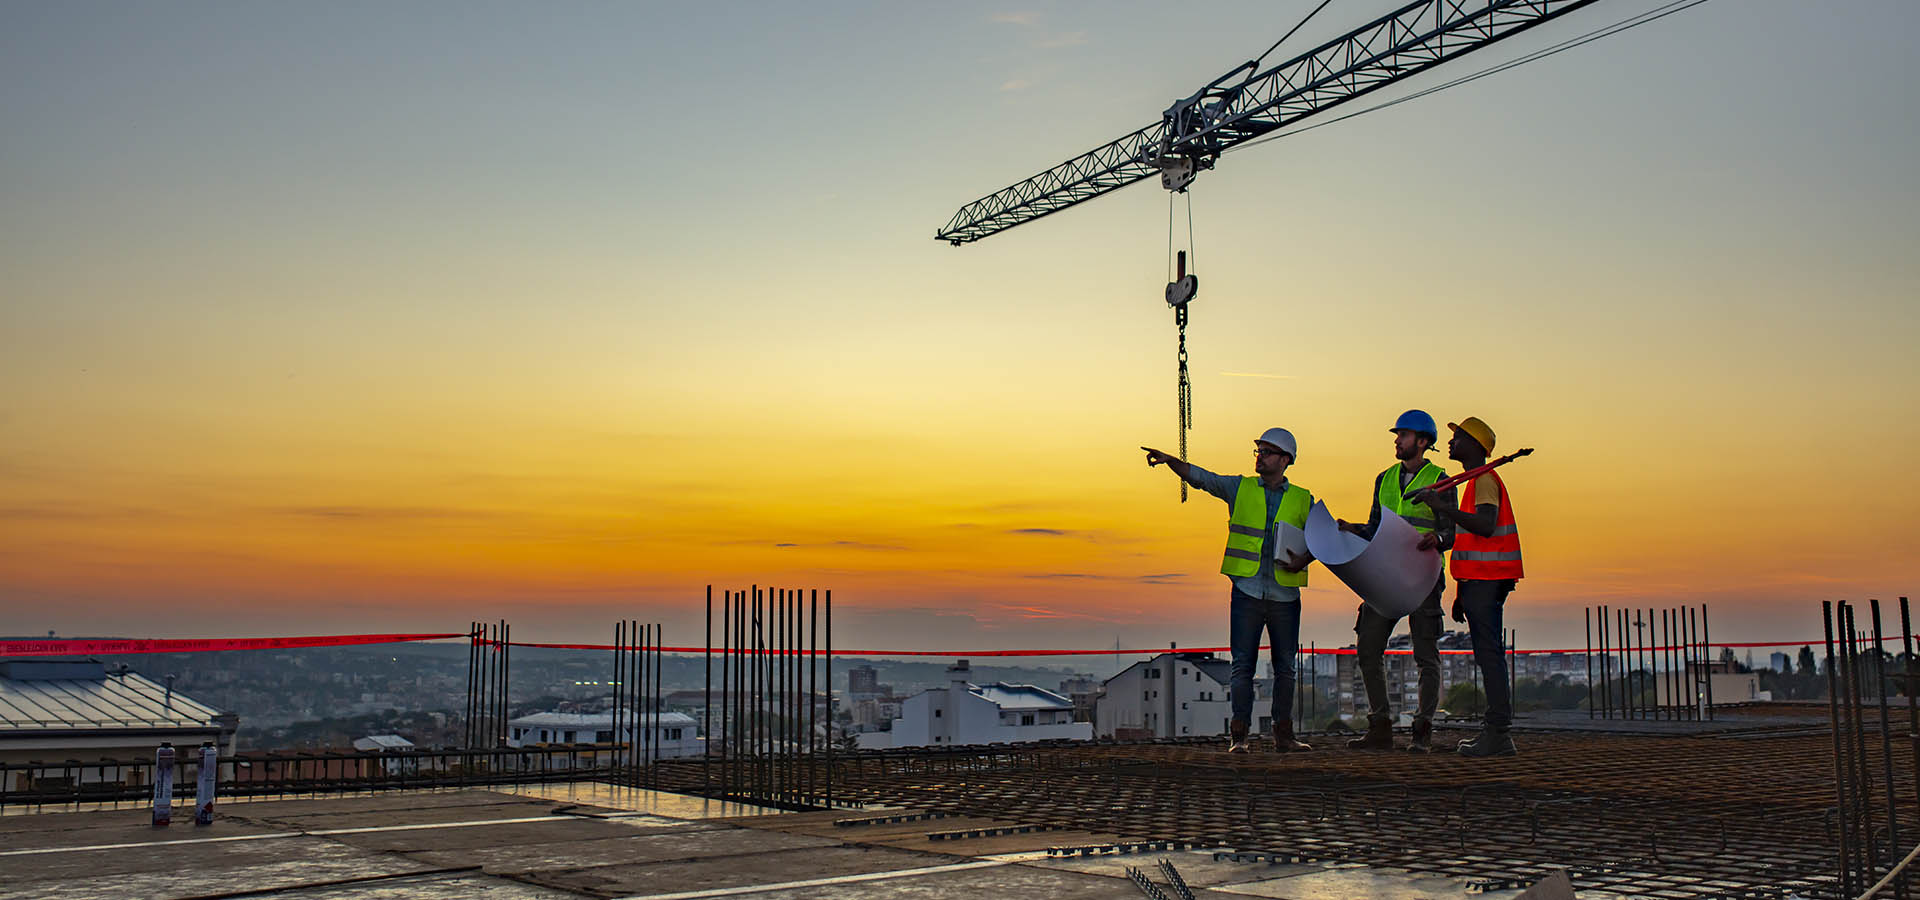 construction-workers-sunset